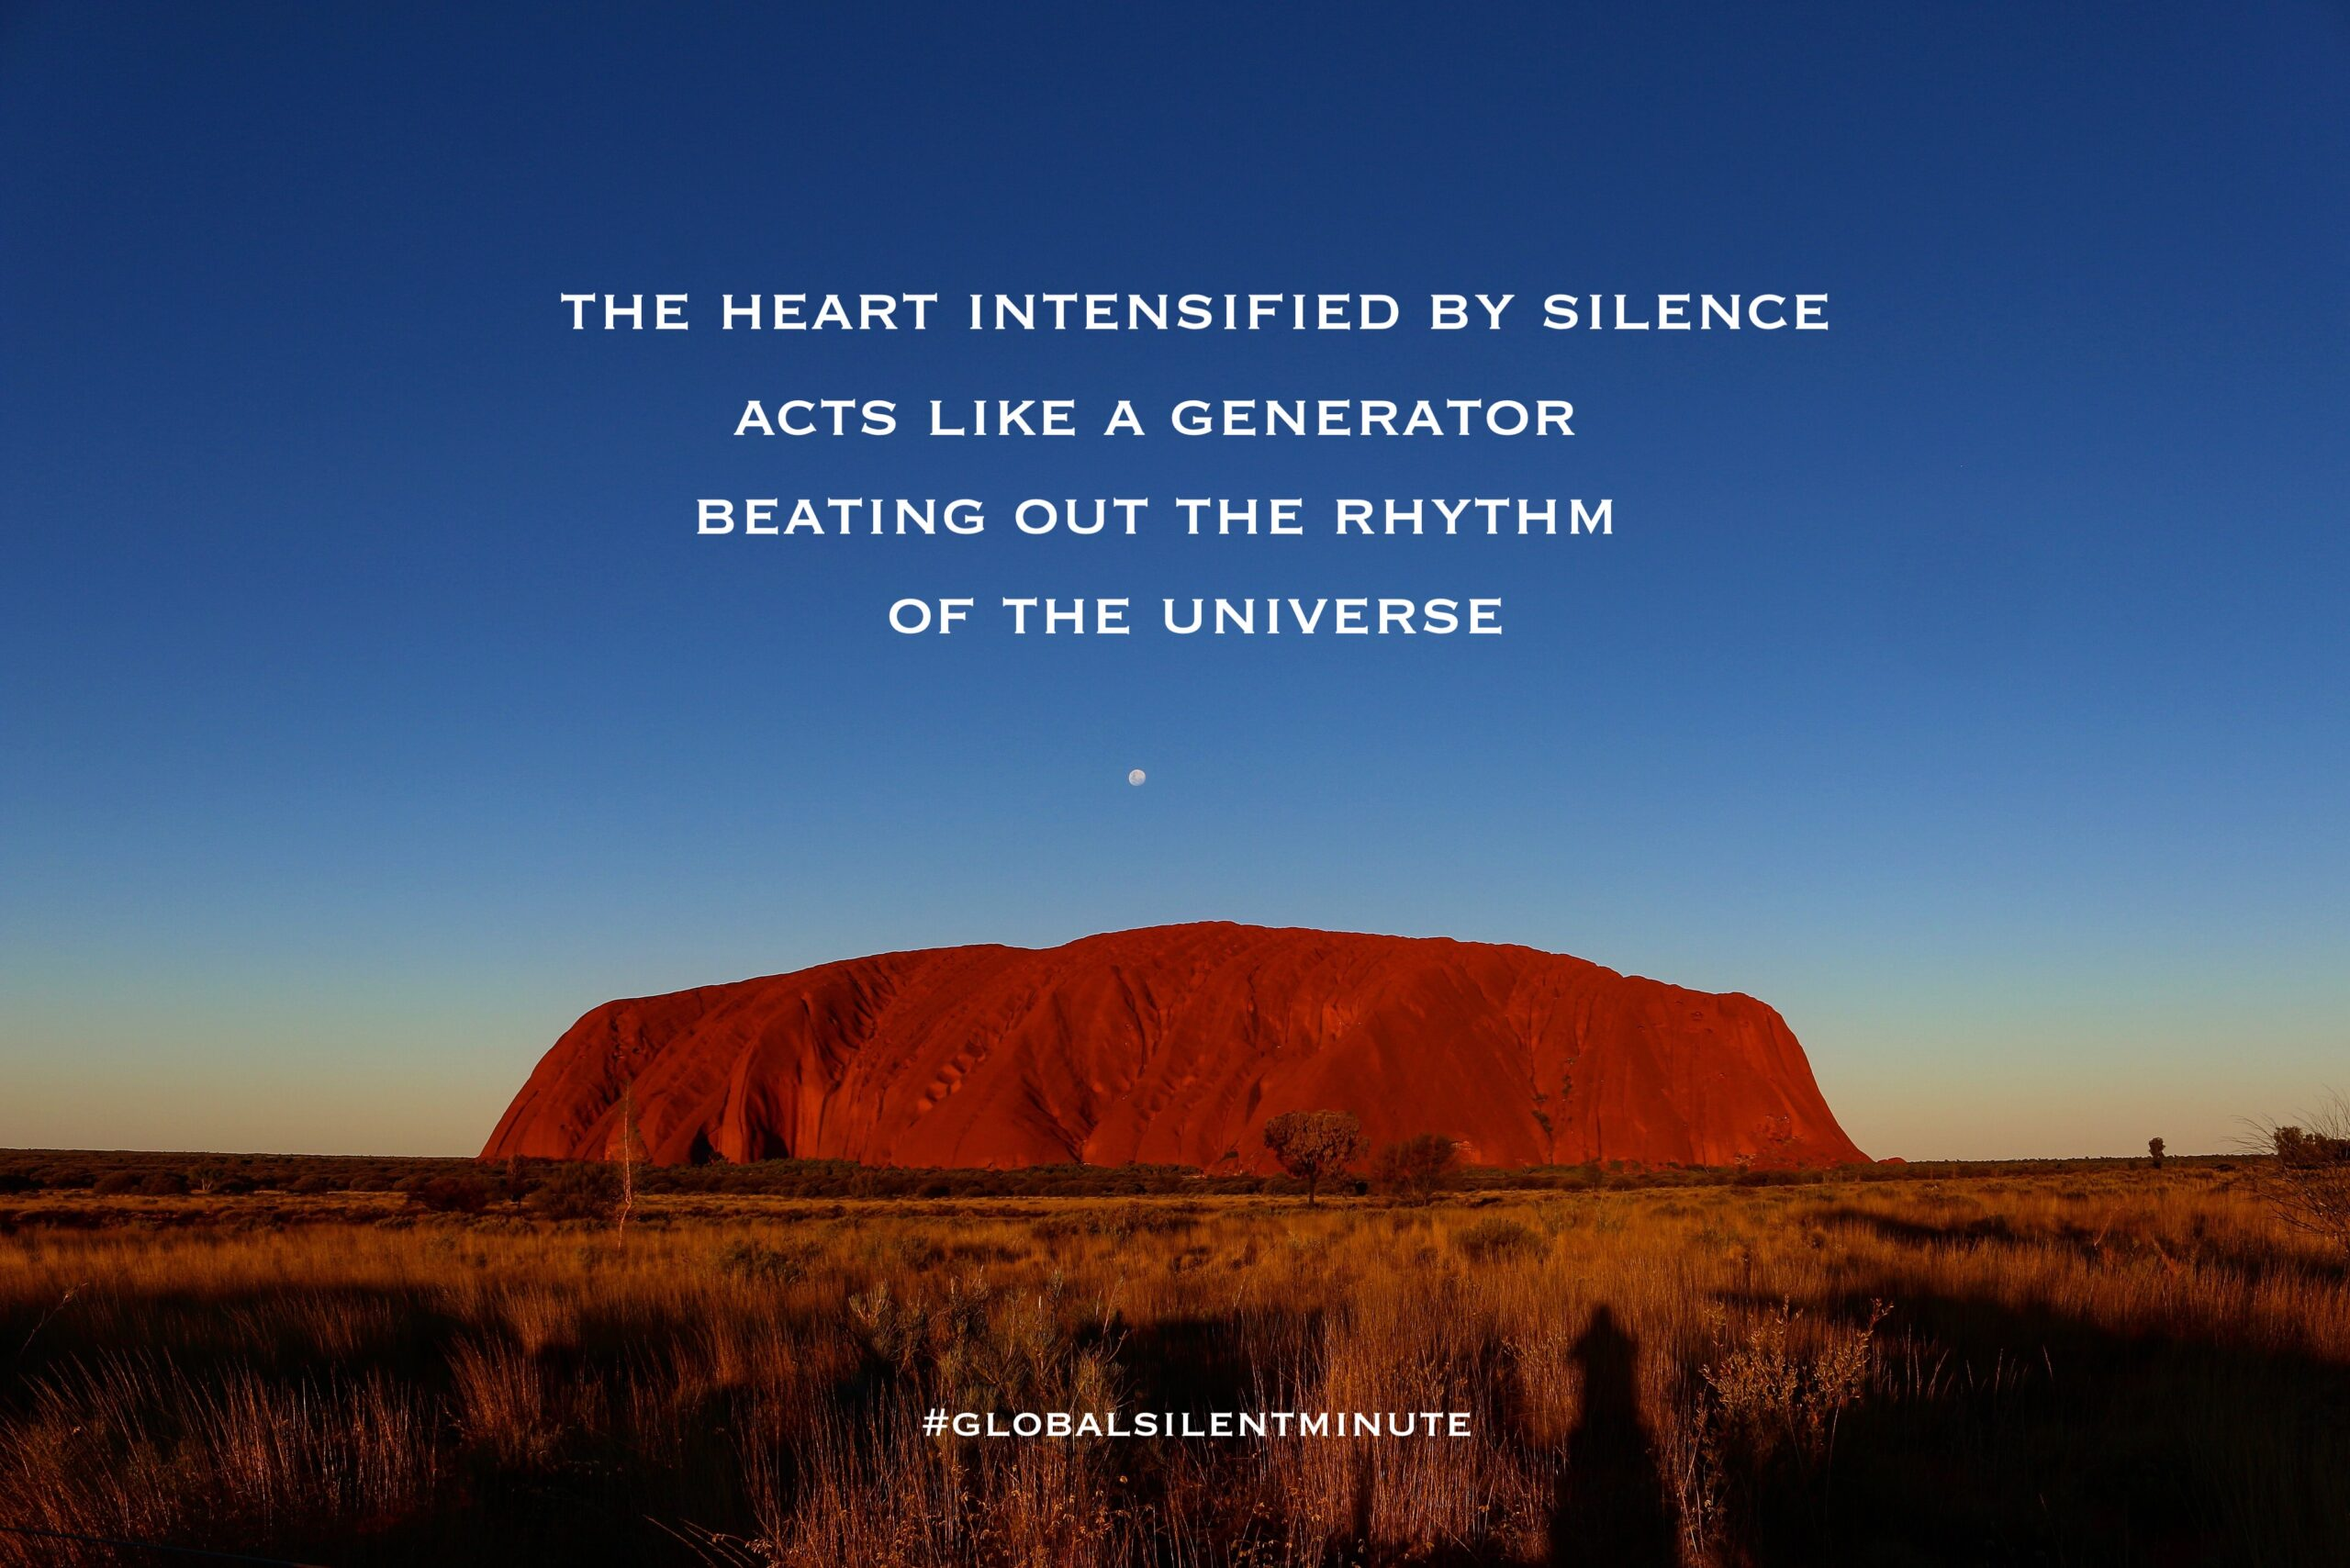 26.The Heart instensified by Silence acts like a generator